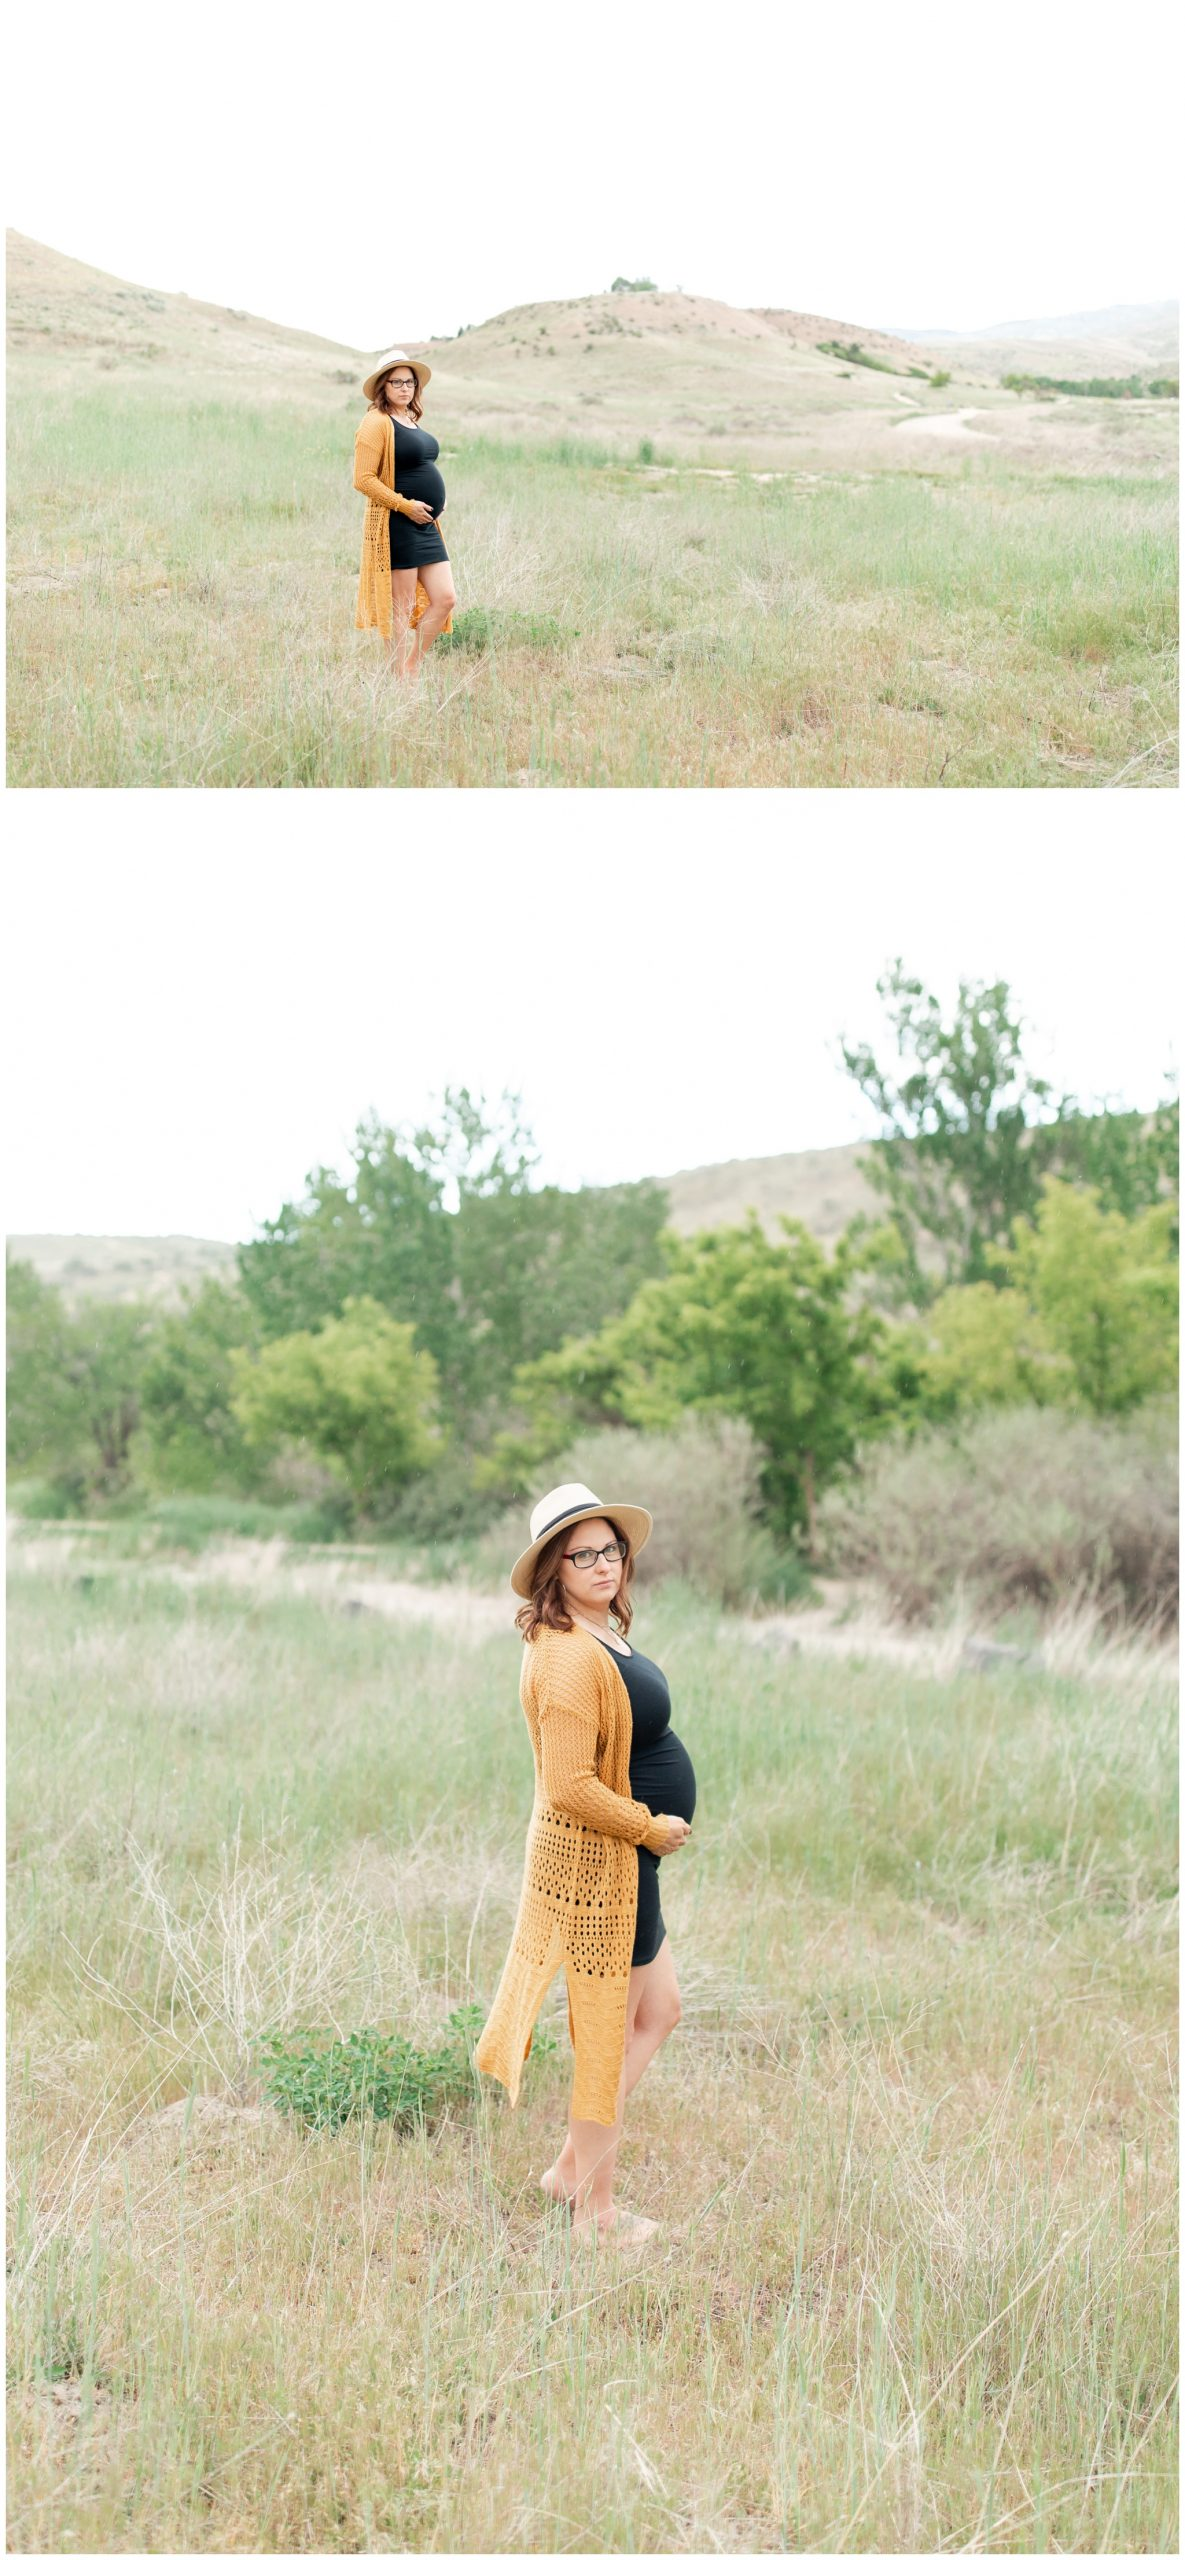 Boho maternity pictures in Boise, Idaho near the military reserve.